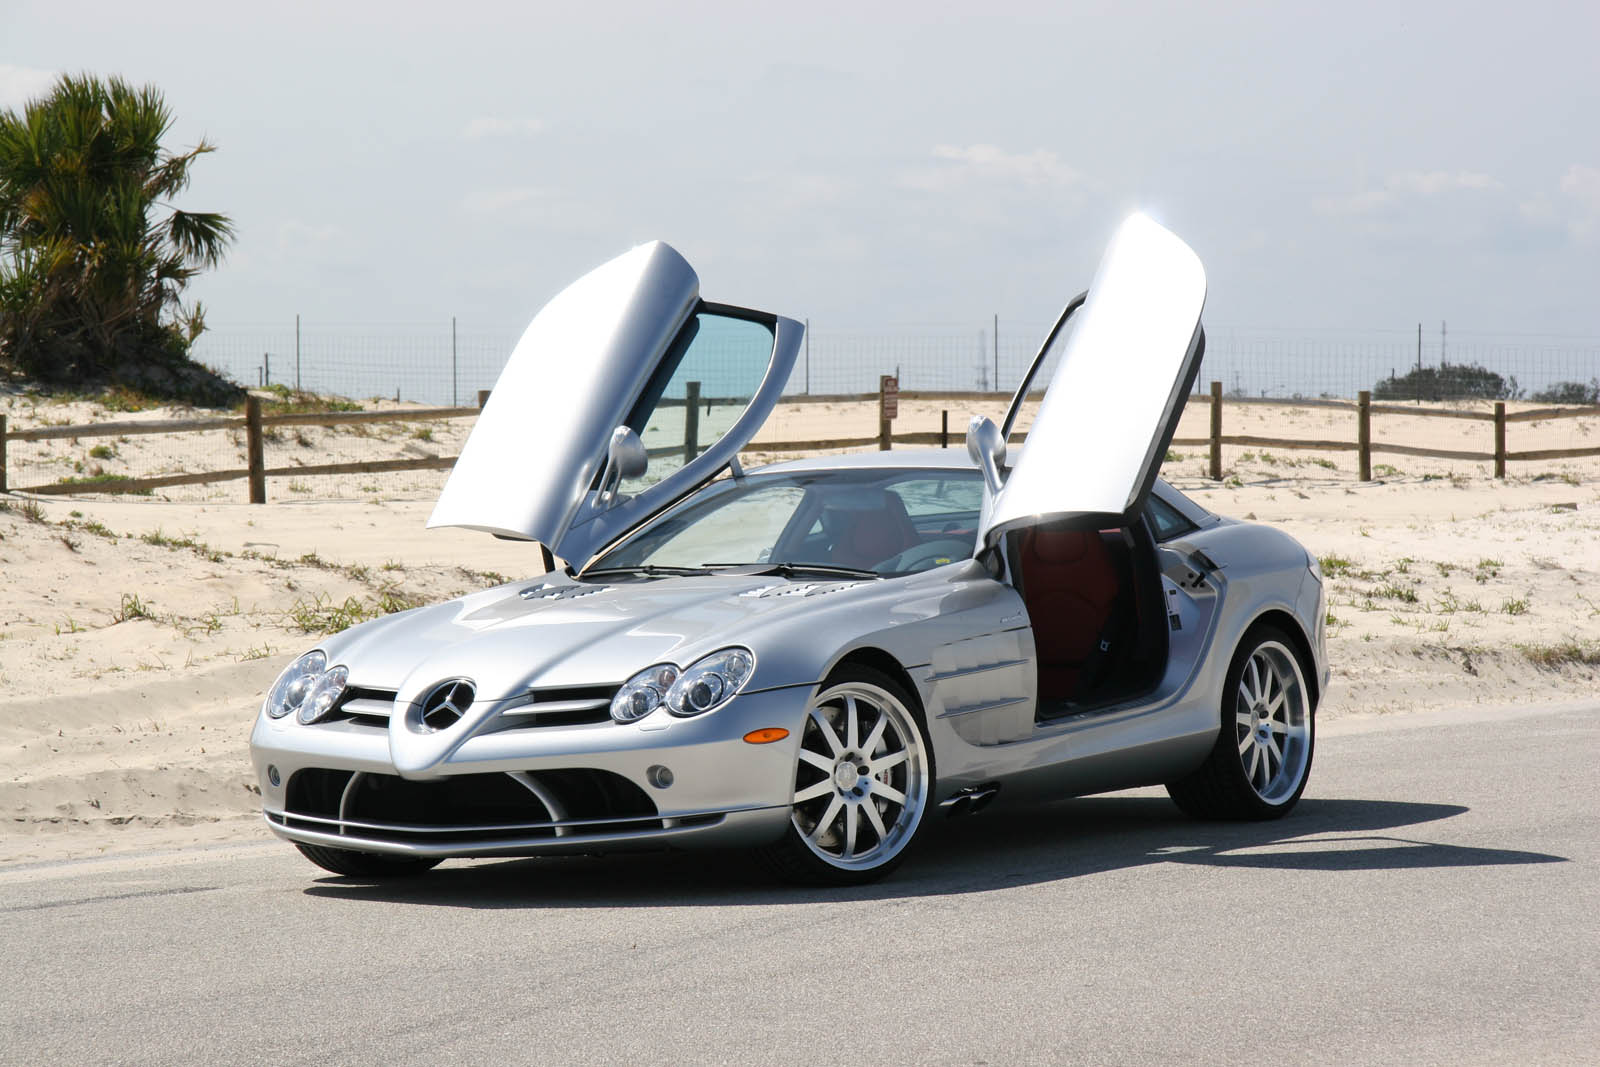 Mercedes benz news mercedes benz slr mclaren wallpapers for Cars of mercedes benz